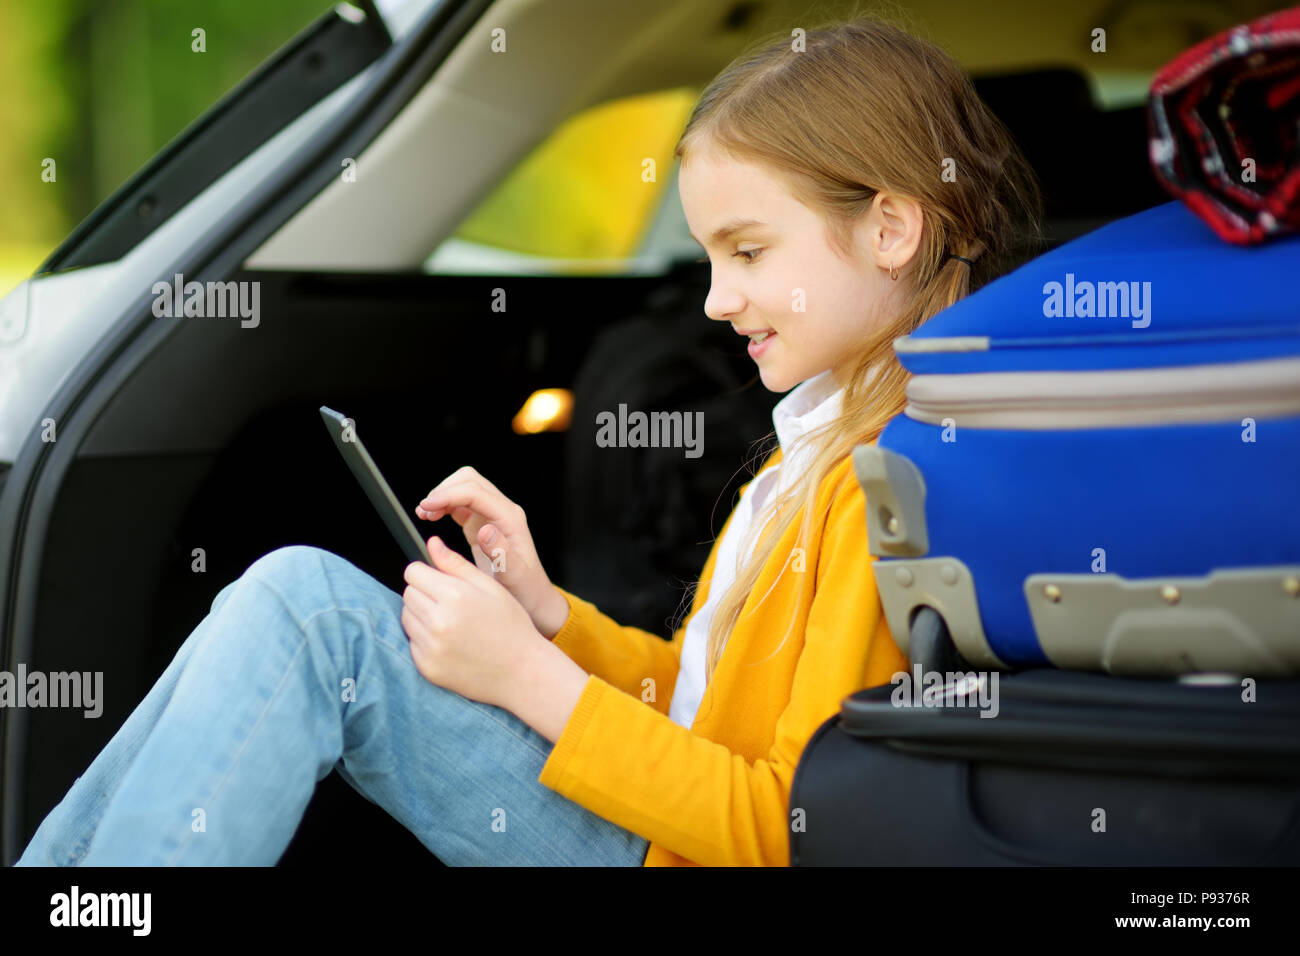 Adorable little girl ready to go on vacations with her parents. Kid sitting in a car trunk and reading her ebook. Traveling by car with kids. - Stock Image